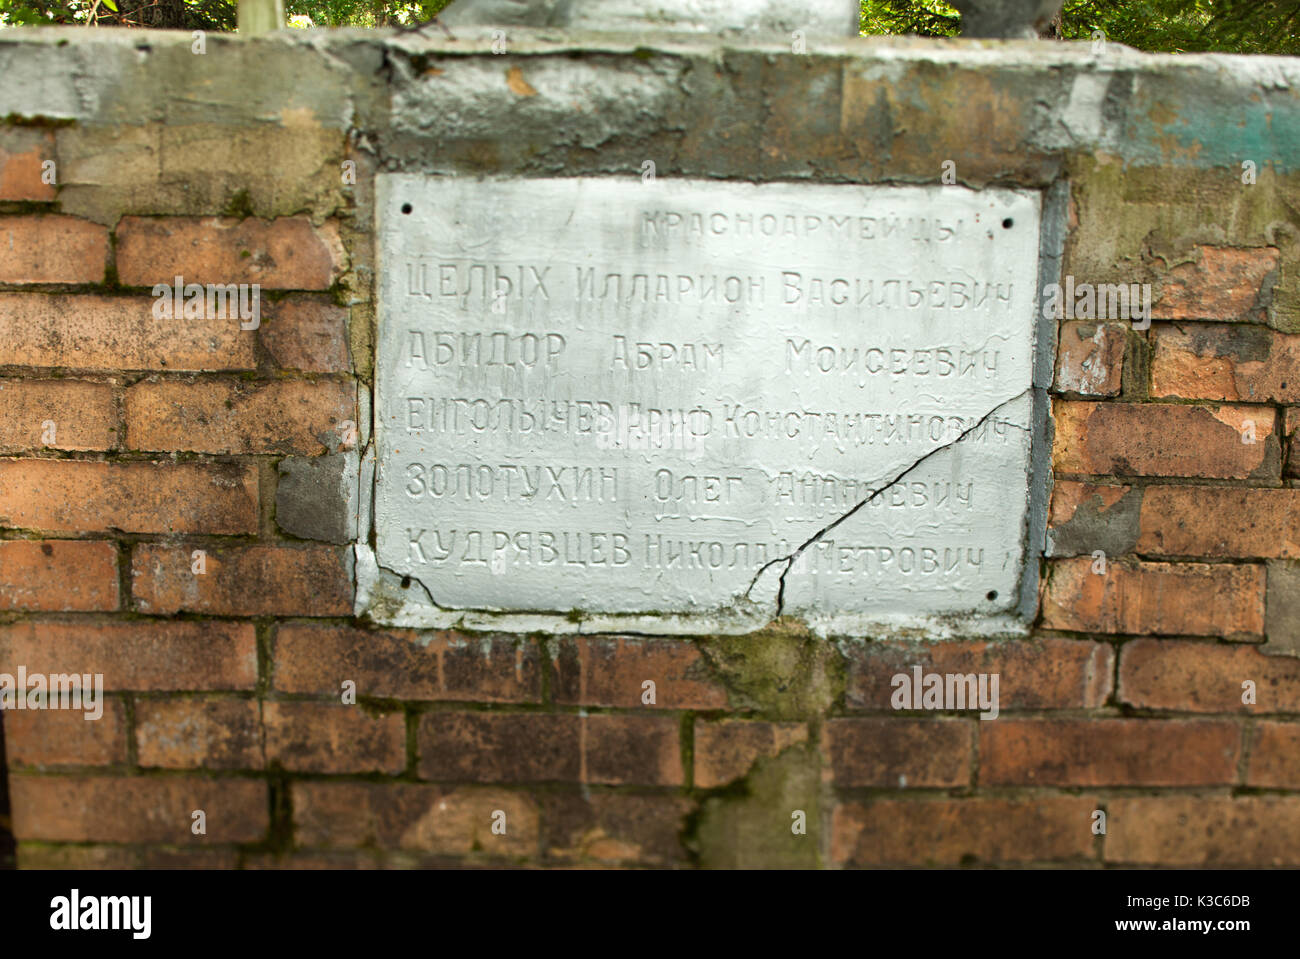 Red army service man WWII Mass grave pedestal in small village near Moscow - Stock Image